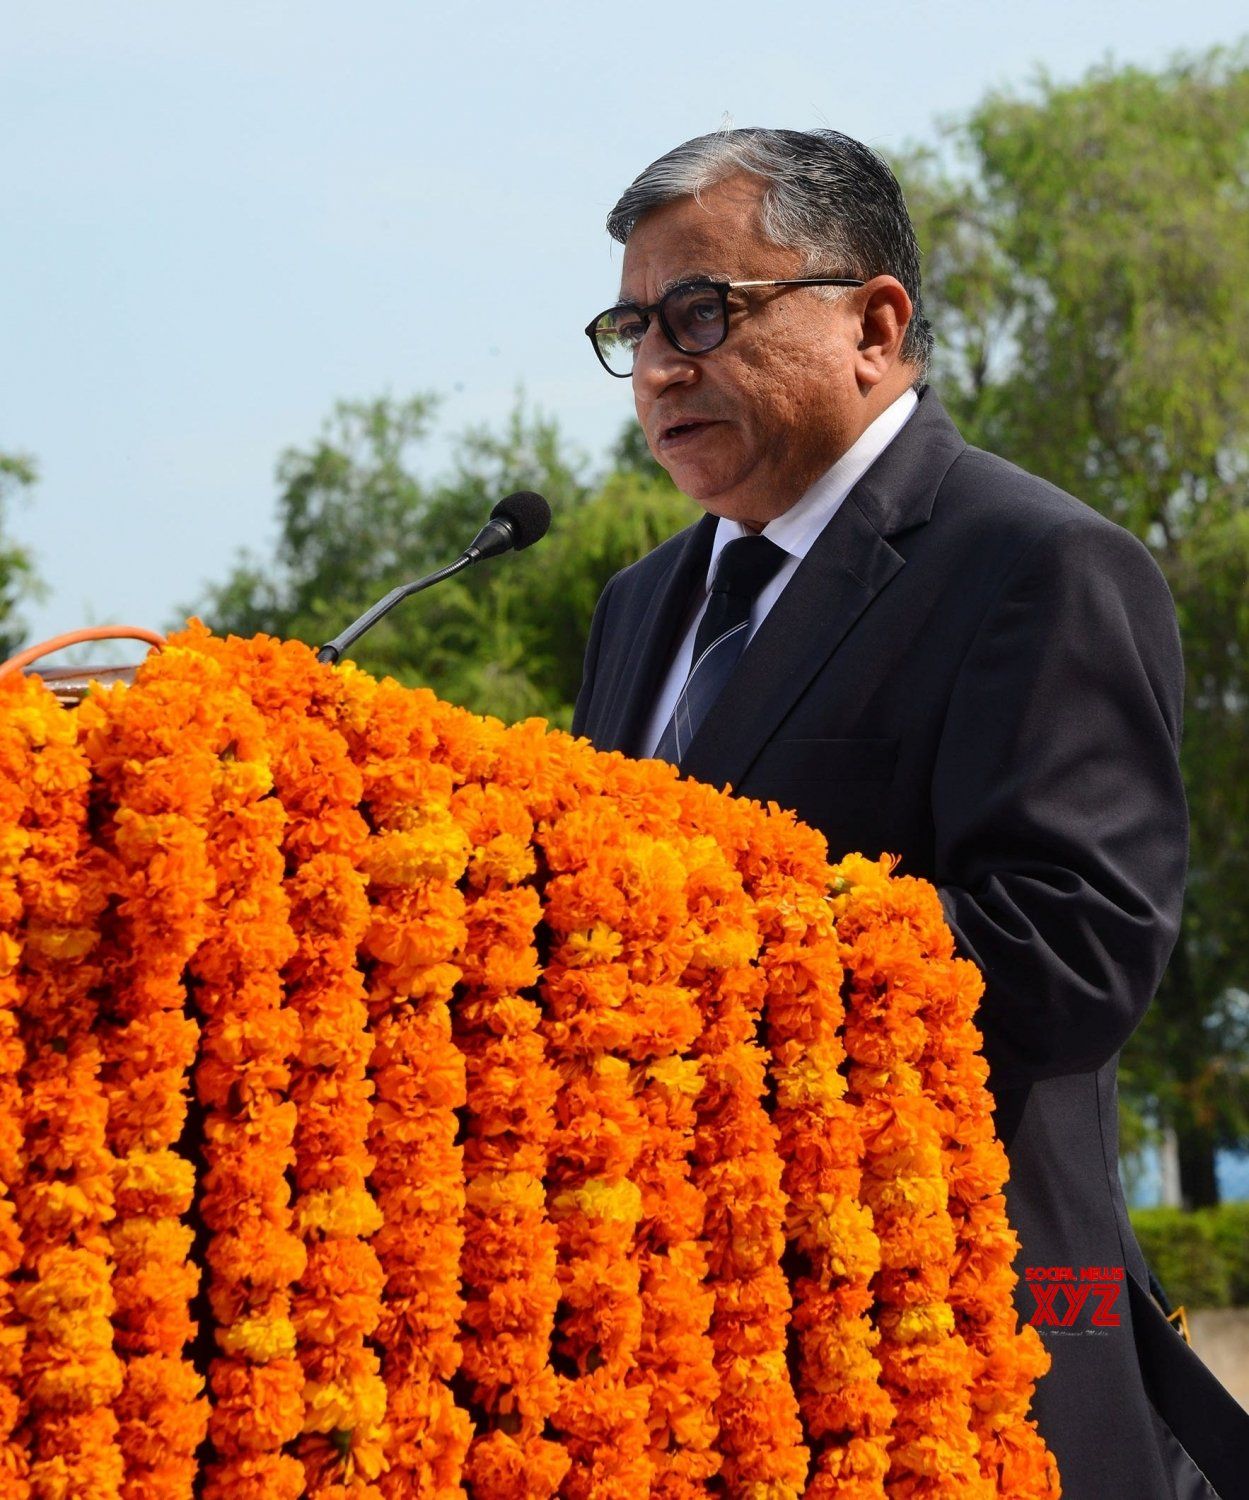 Chandigarh: Chief Justice of Punjab and Haryana High Court during 73rd Independence Day celebrations #Gallery